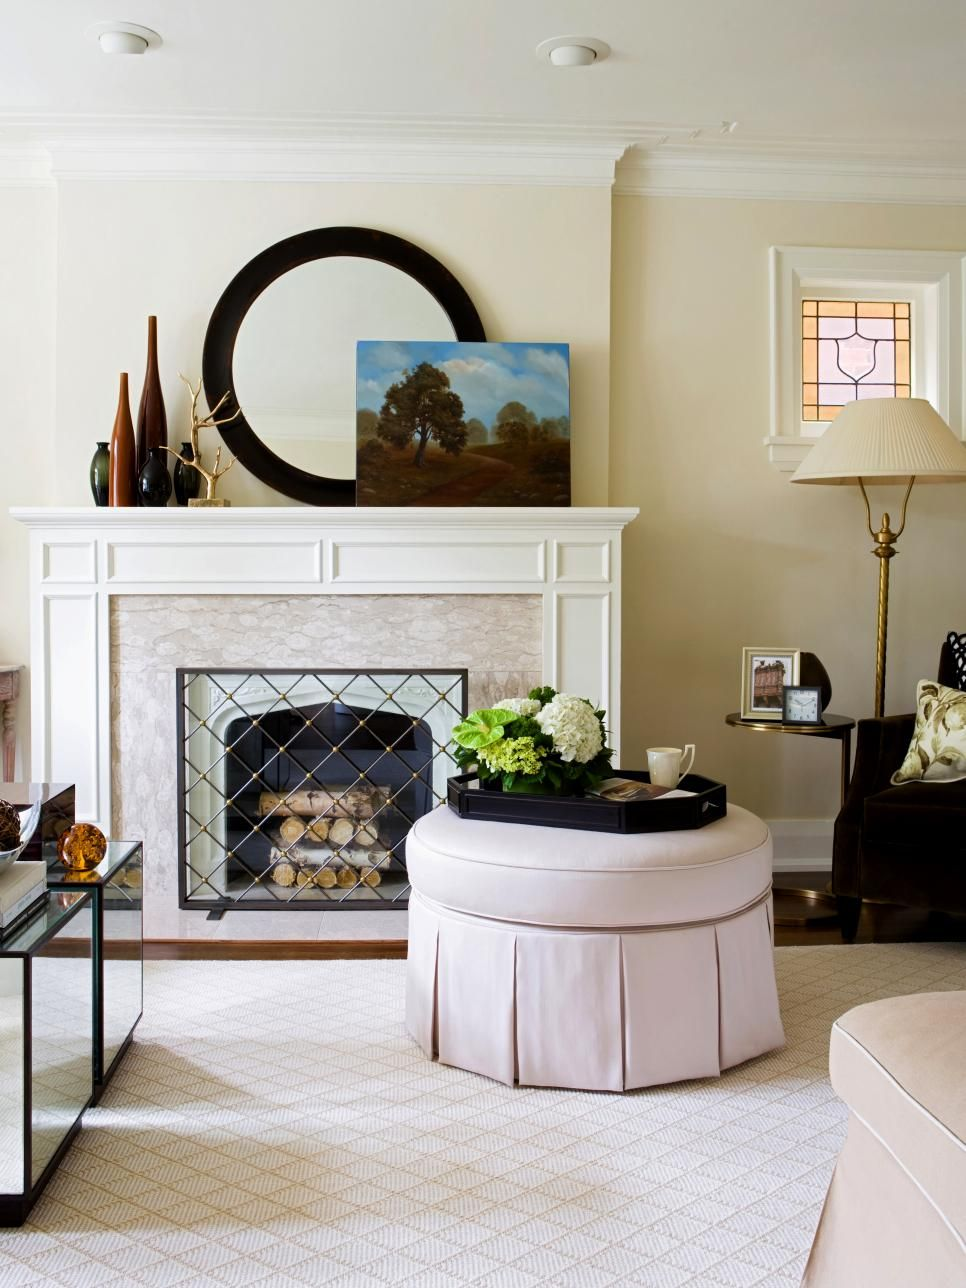 30 fireplace remodel ideas for any budget fireplace fireplace rh pinterest com